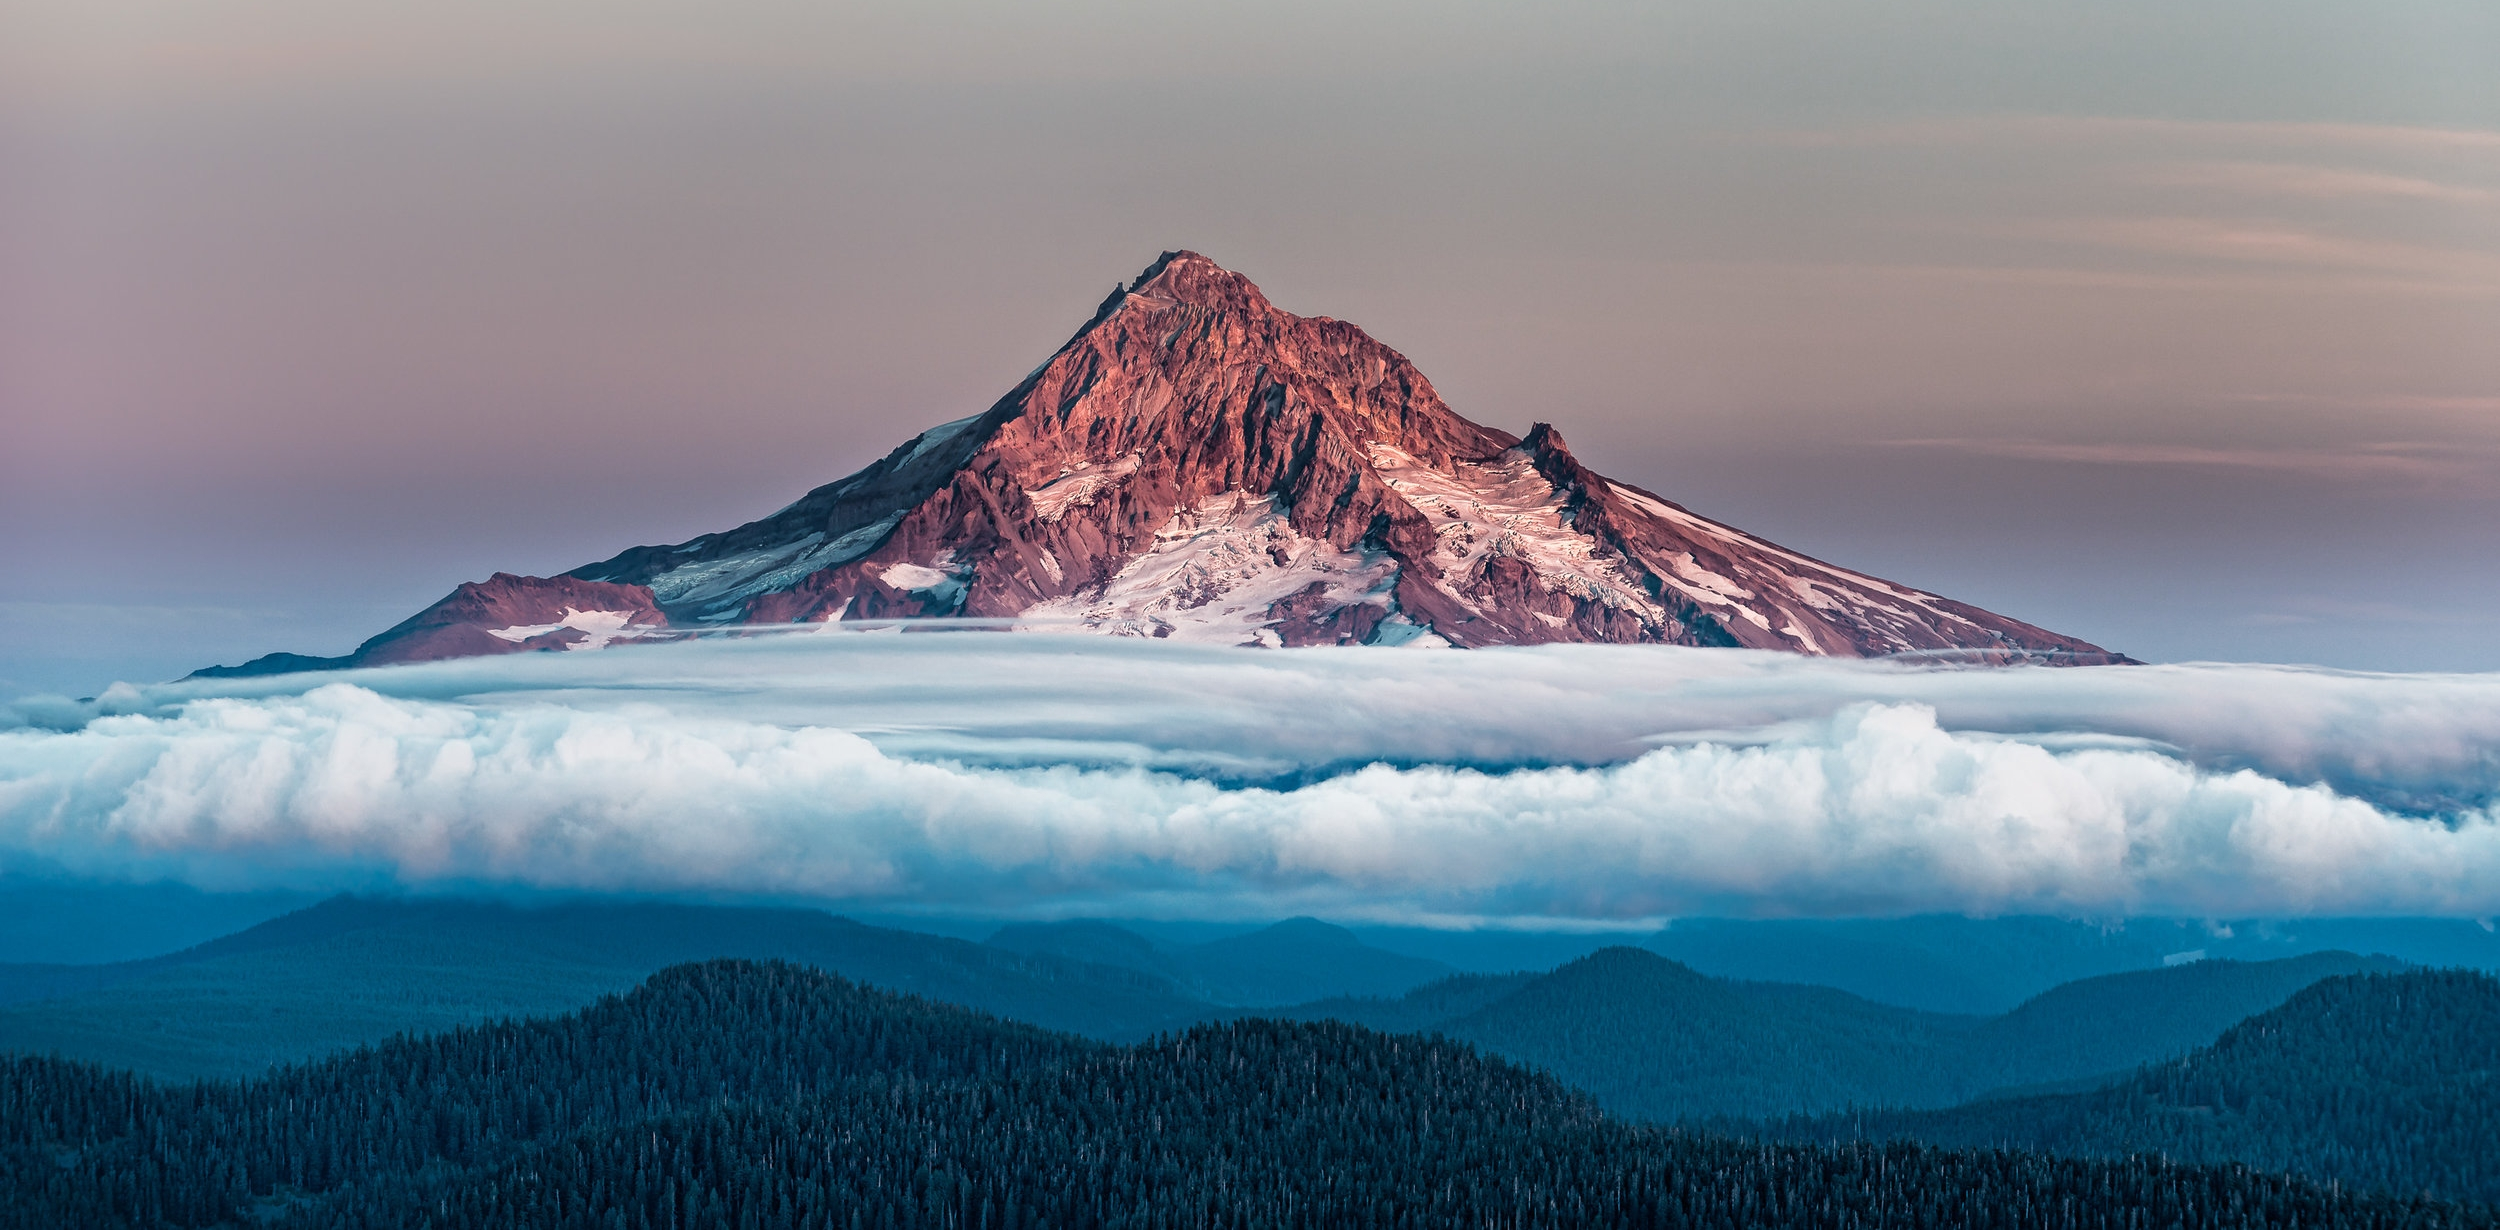 Mt. Hood with Cloud Carpet